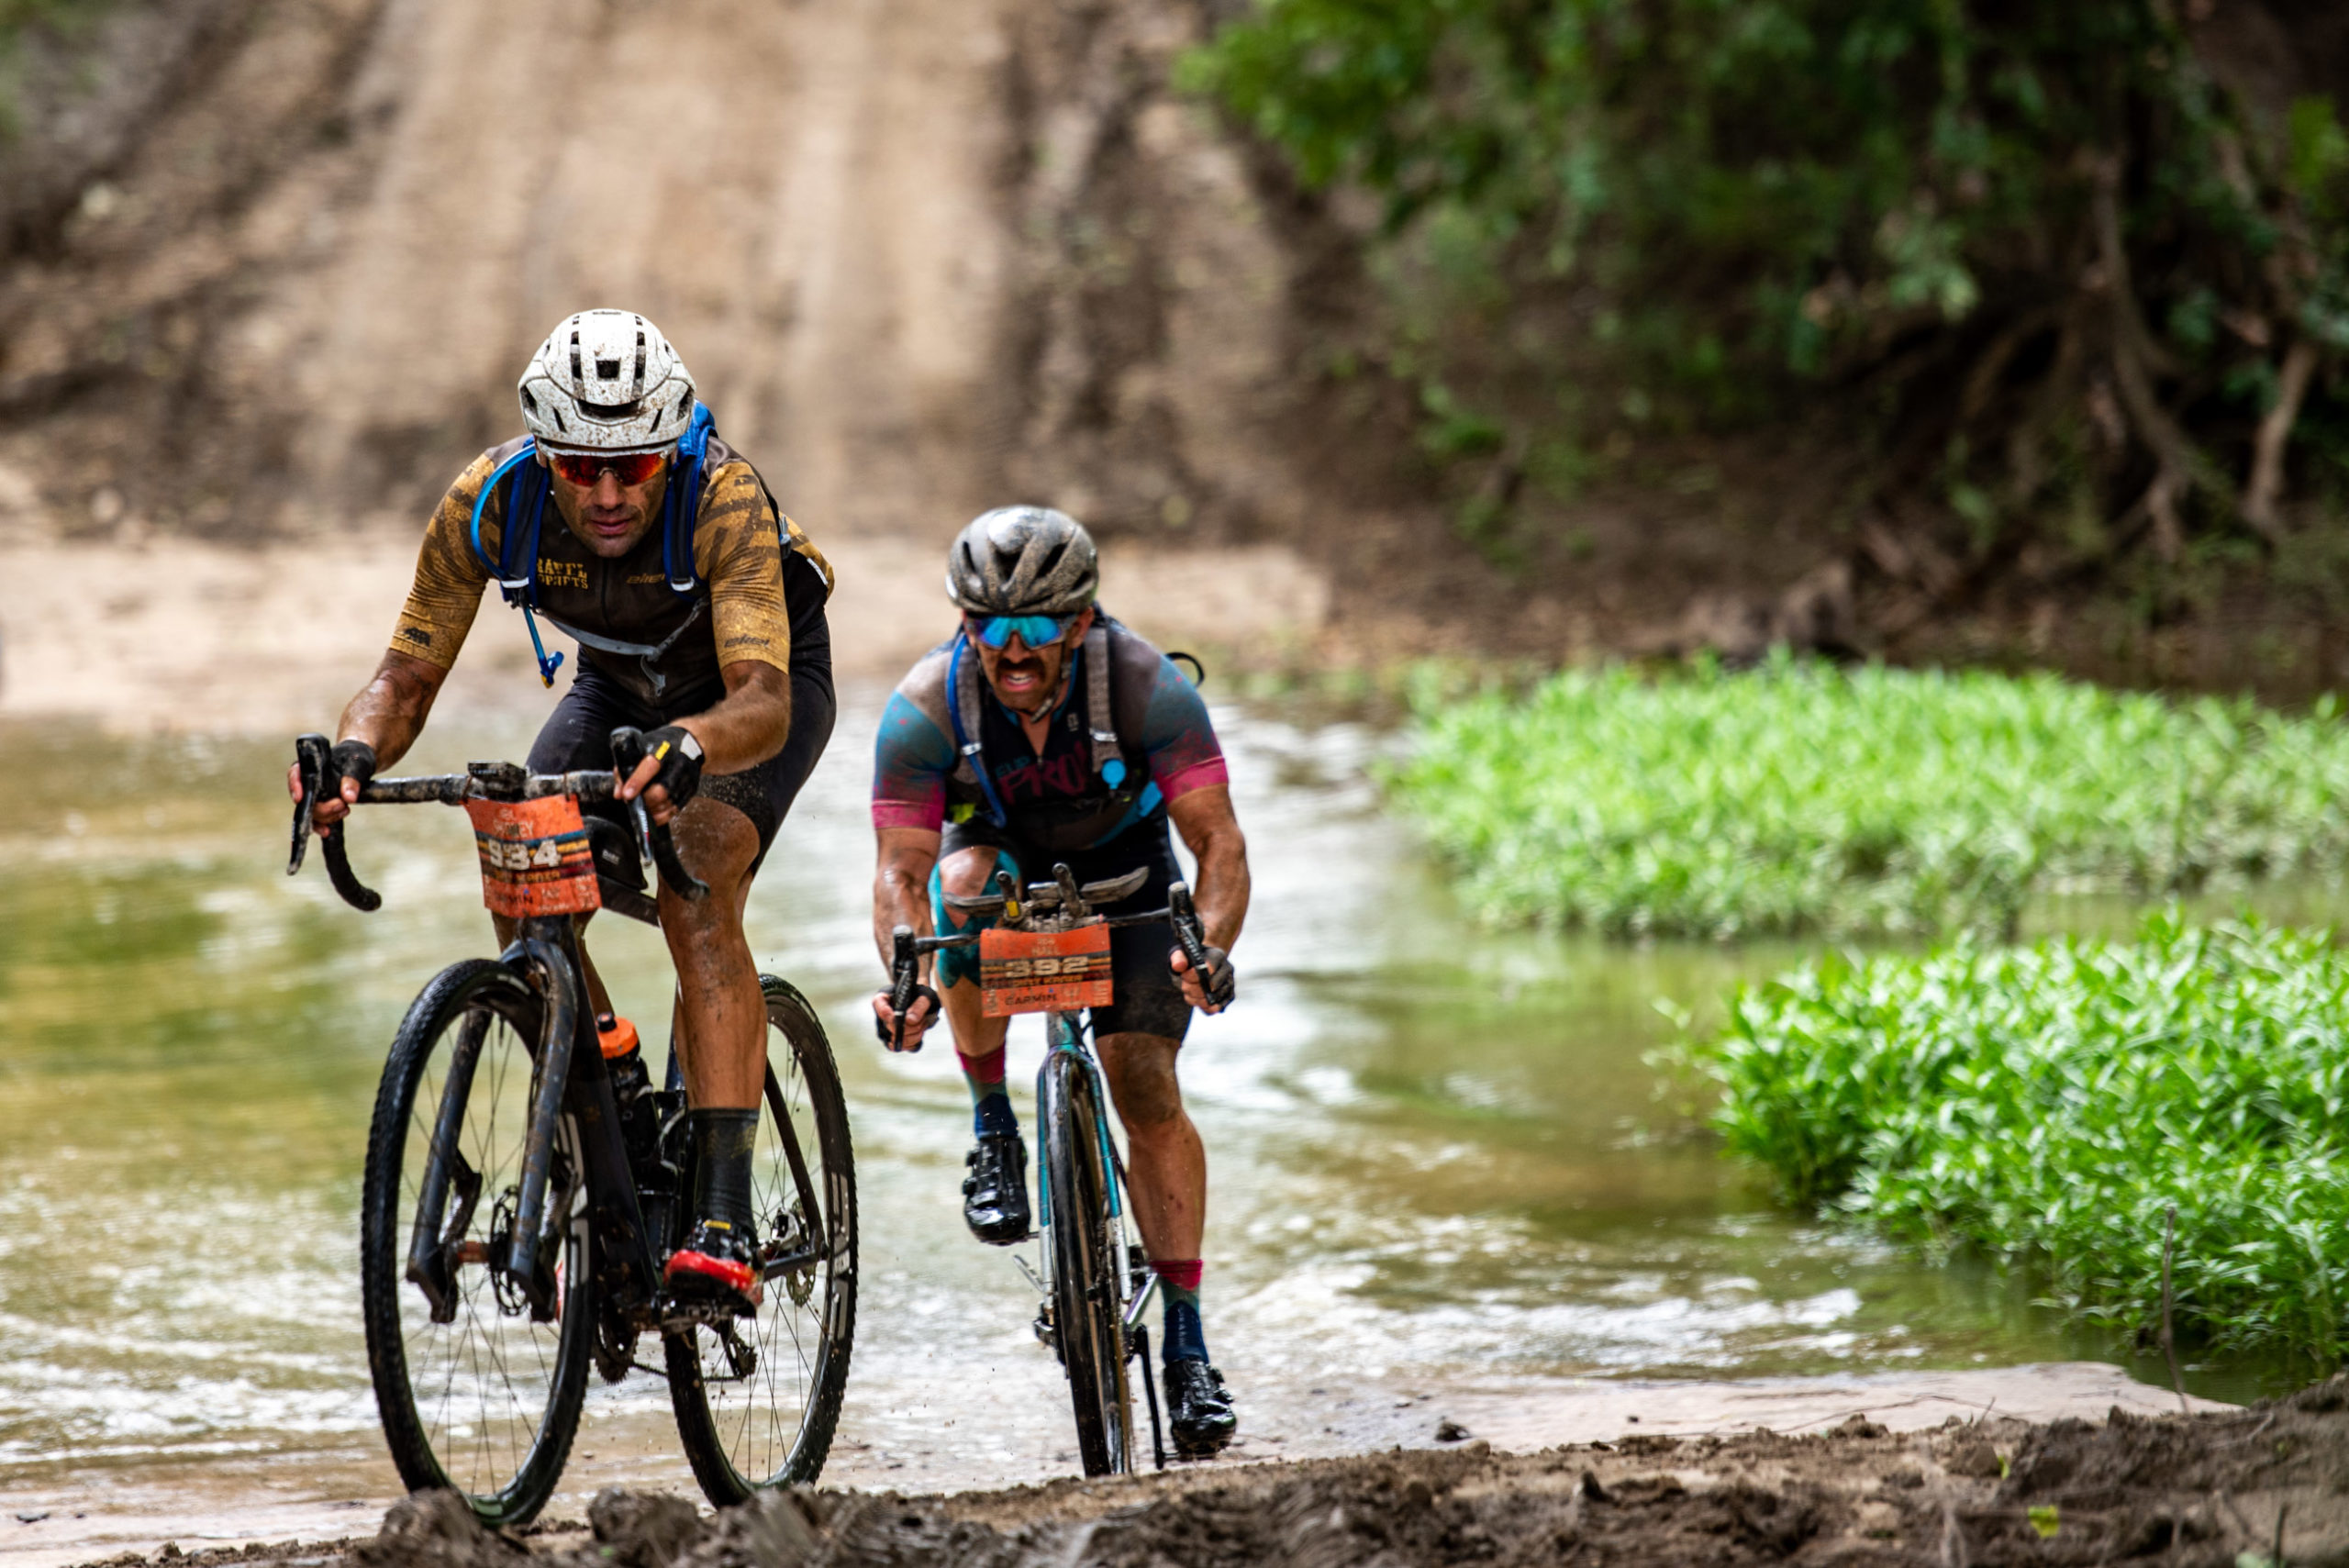 Gravel racing at the UNBOUND Gravel event in Emporia, Kansas. Photo by Ian Matteson